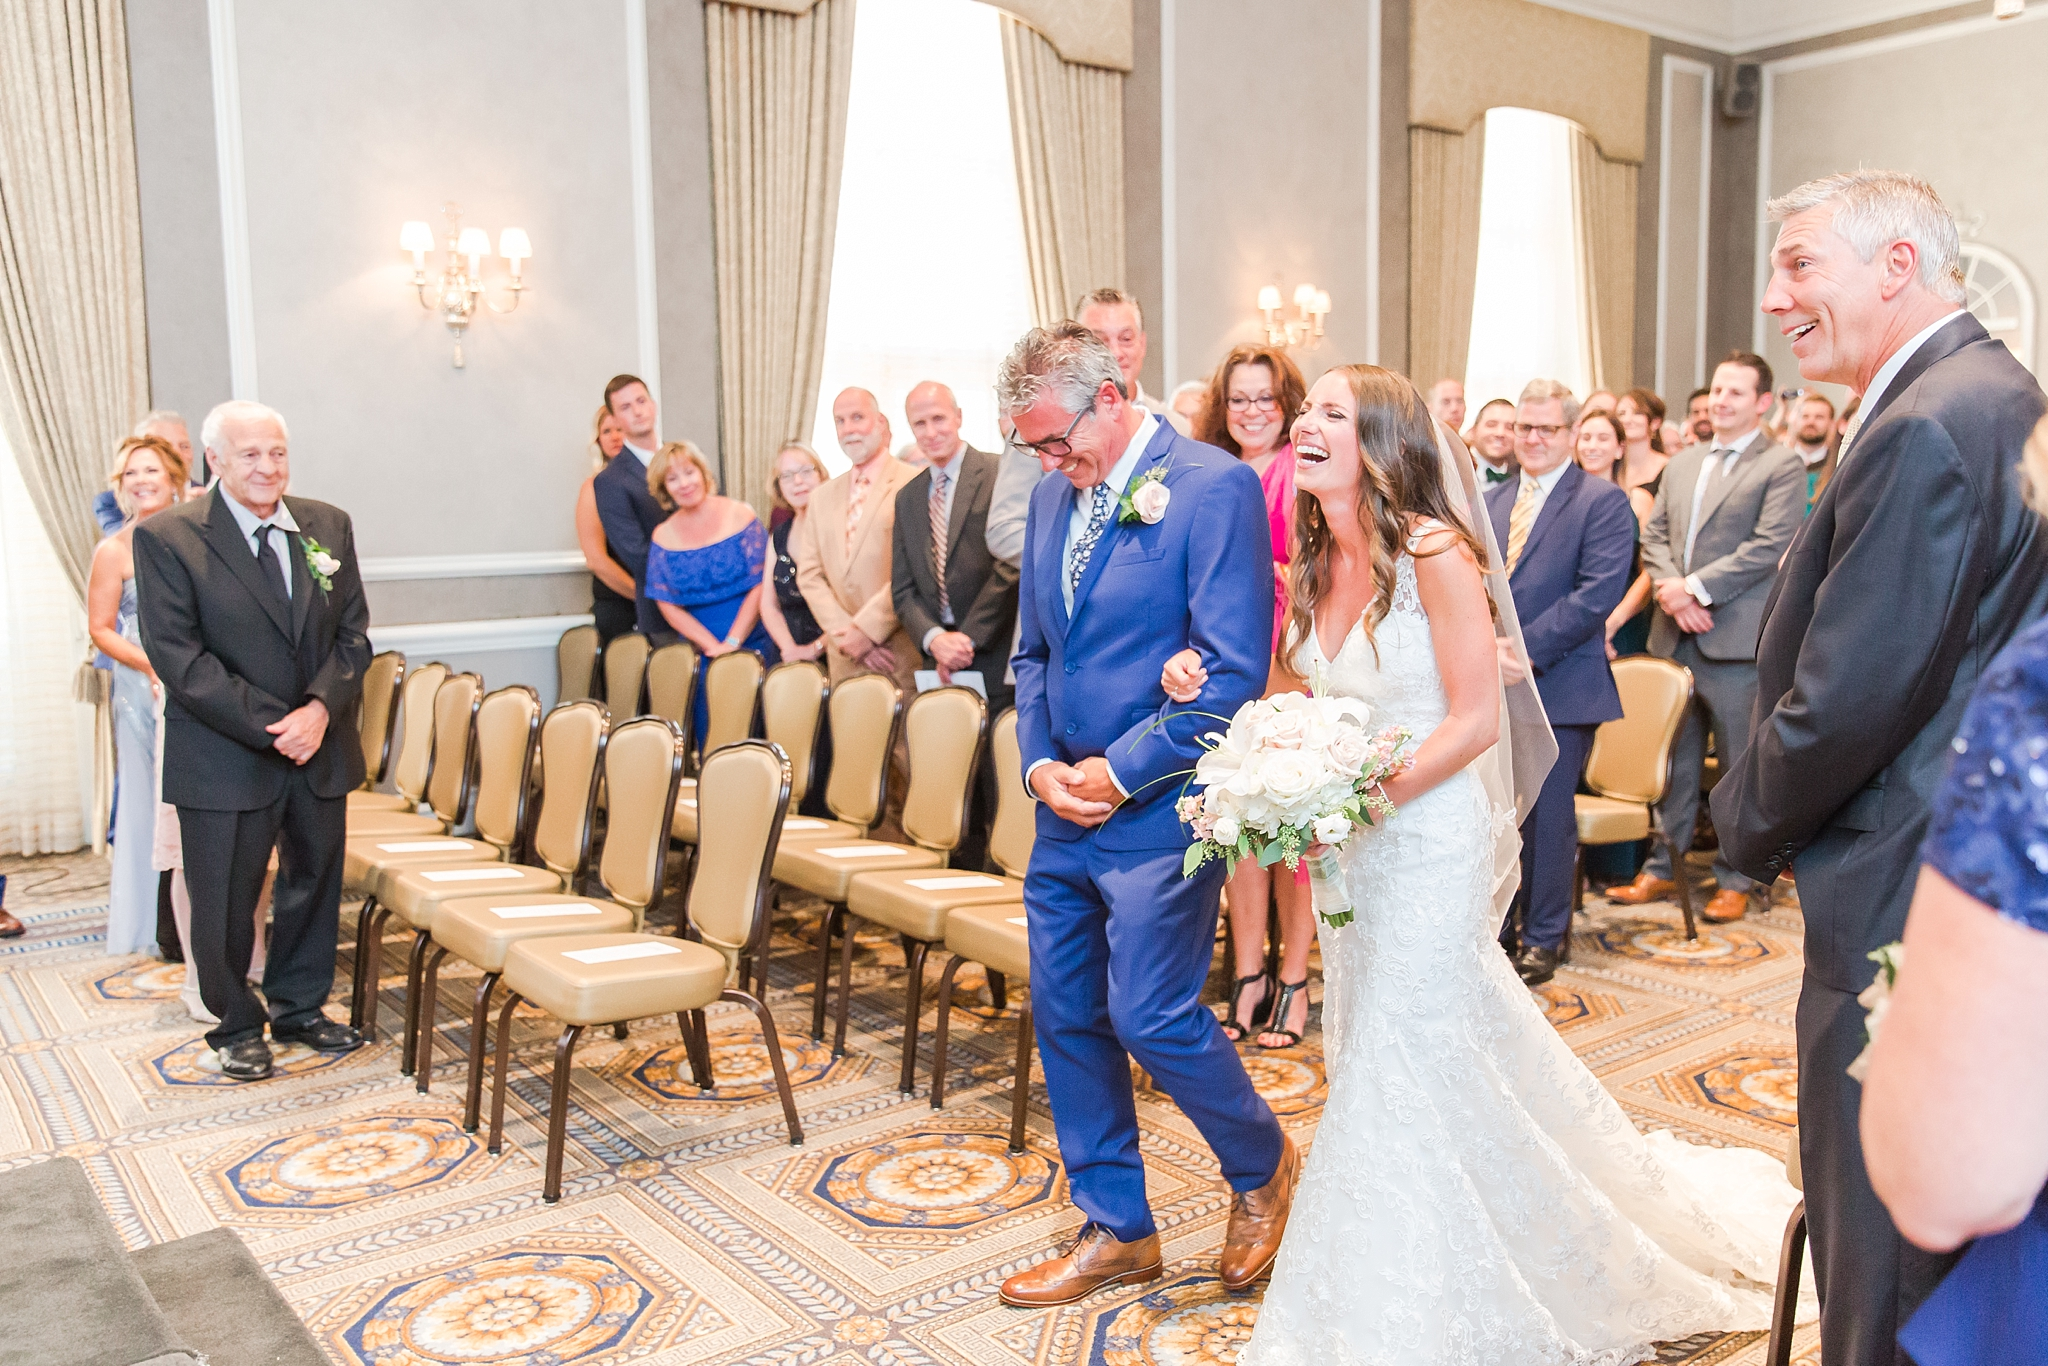 playful-blush-navy-wedding-photos-the-detroit-athletic-club-in-detroit-michigan-by-courtney-carolyn-photography_0026.jpg